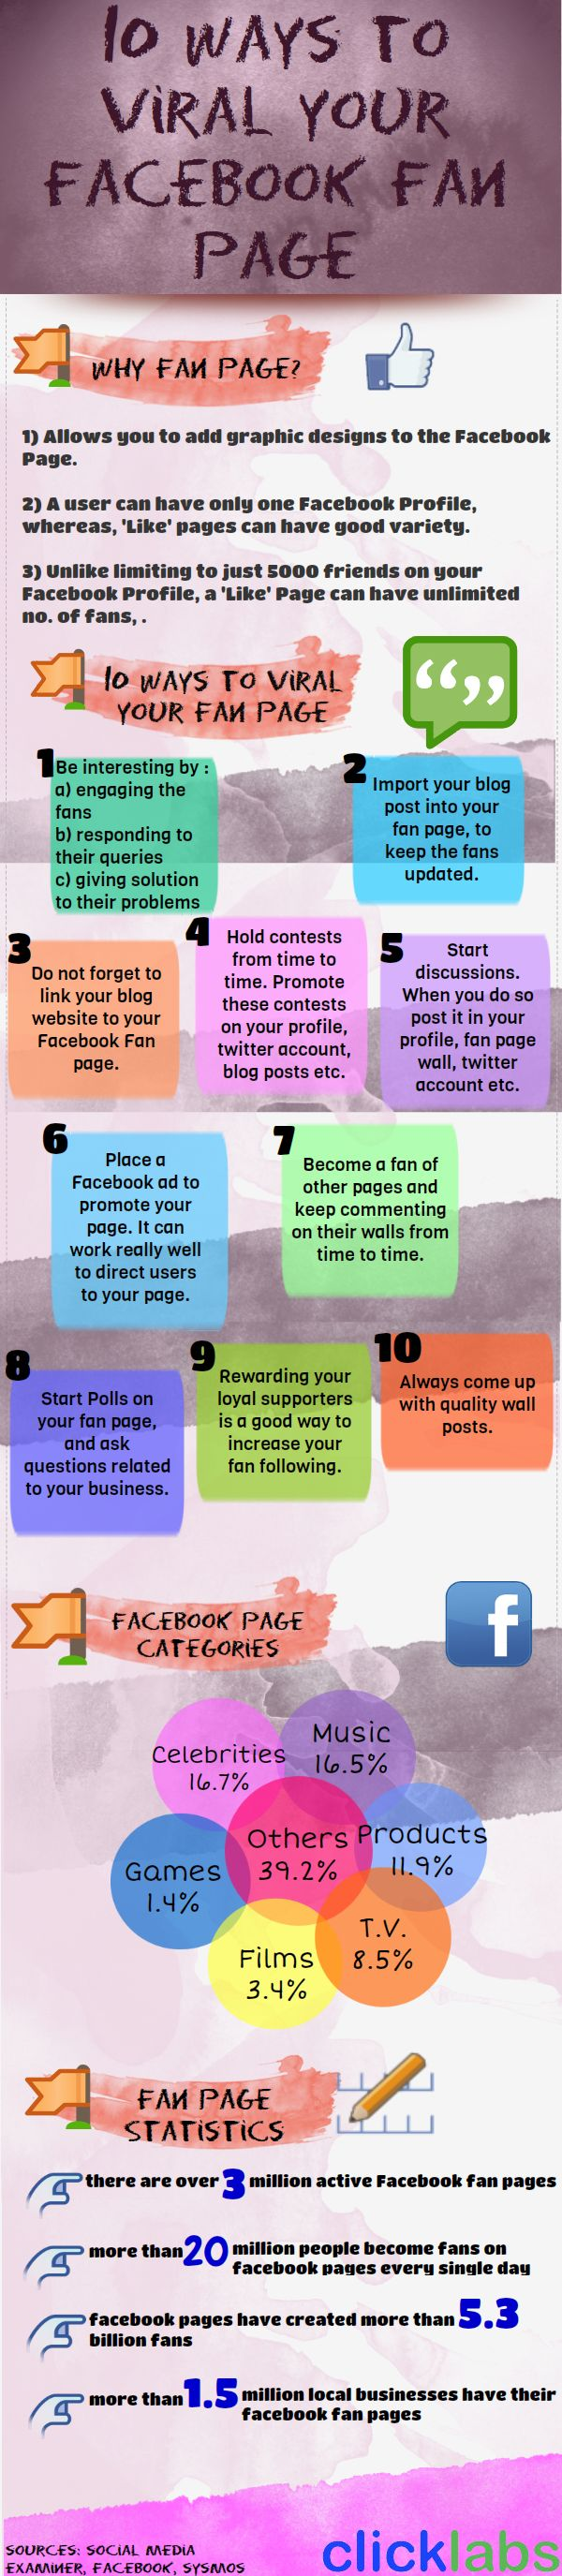 10 Ways To Make Your Facebook Page Go Viral #Facebook #FacebookPage #FacebookMarketing